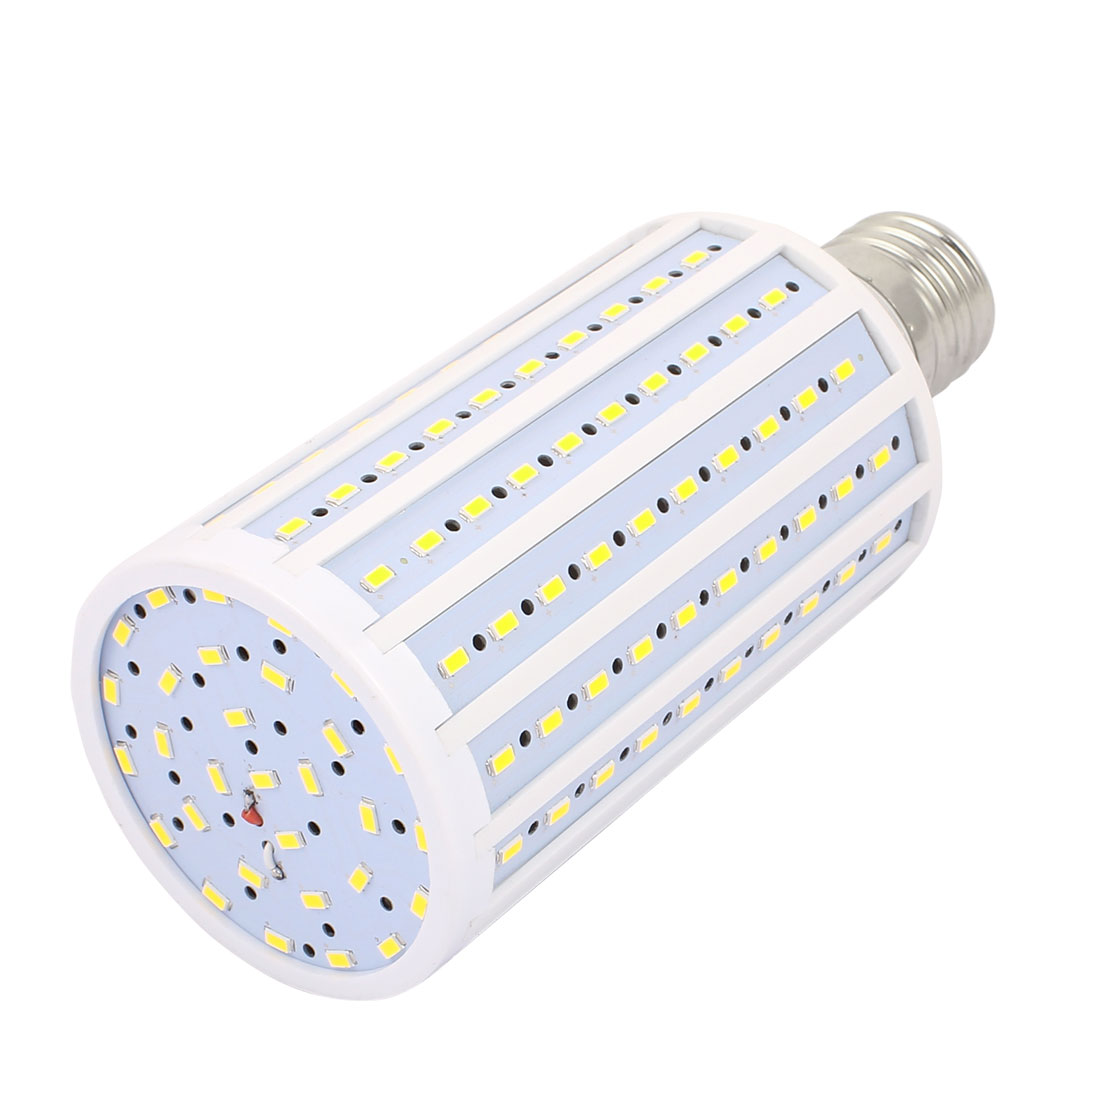 AC85-265V 60W 5730SMD LED E40 Energy Saving Corn Light Bulb Lamp Pure White